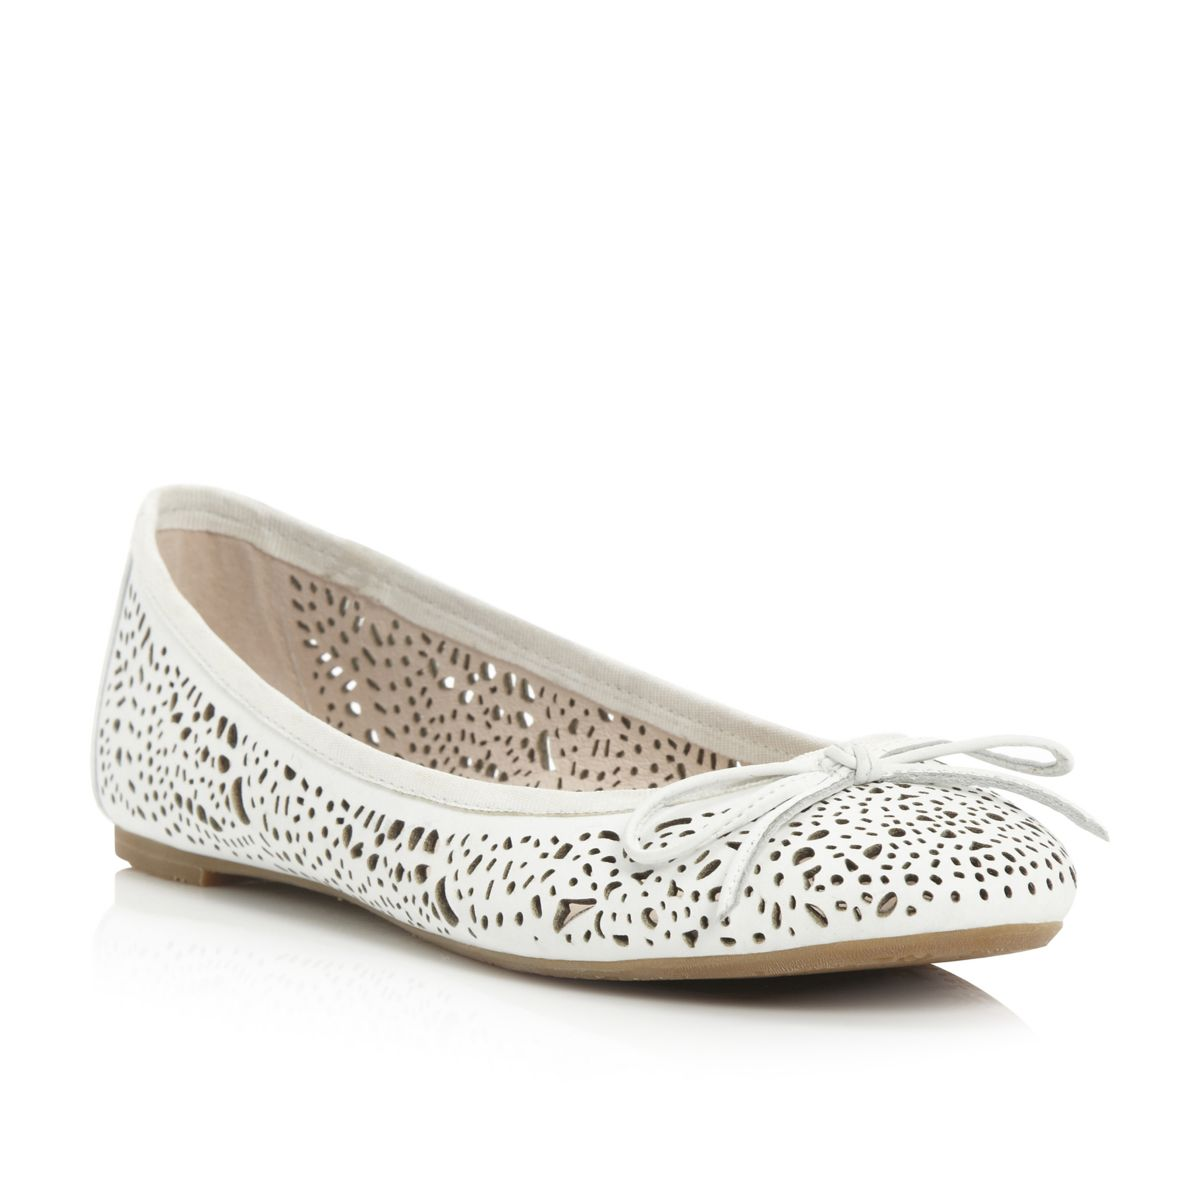 BERTIE-LADIES-MANDIE-WOMENS-WHITE-LASER-CUT-OUT-BALLERINA-FLATS-SHOES-SIZE-3-8